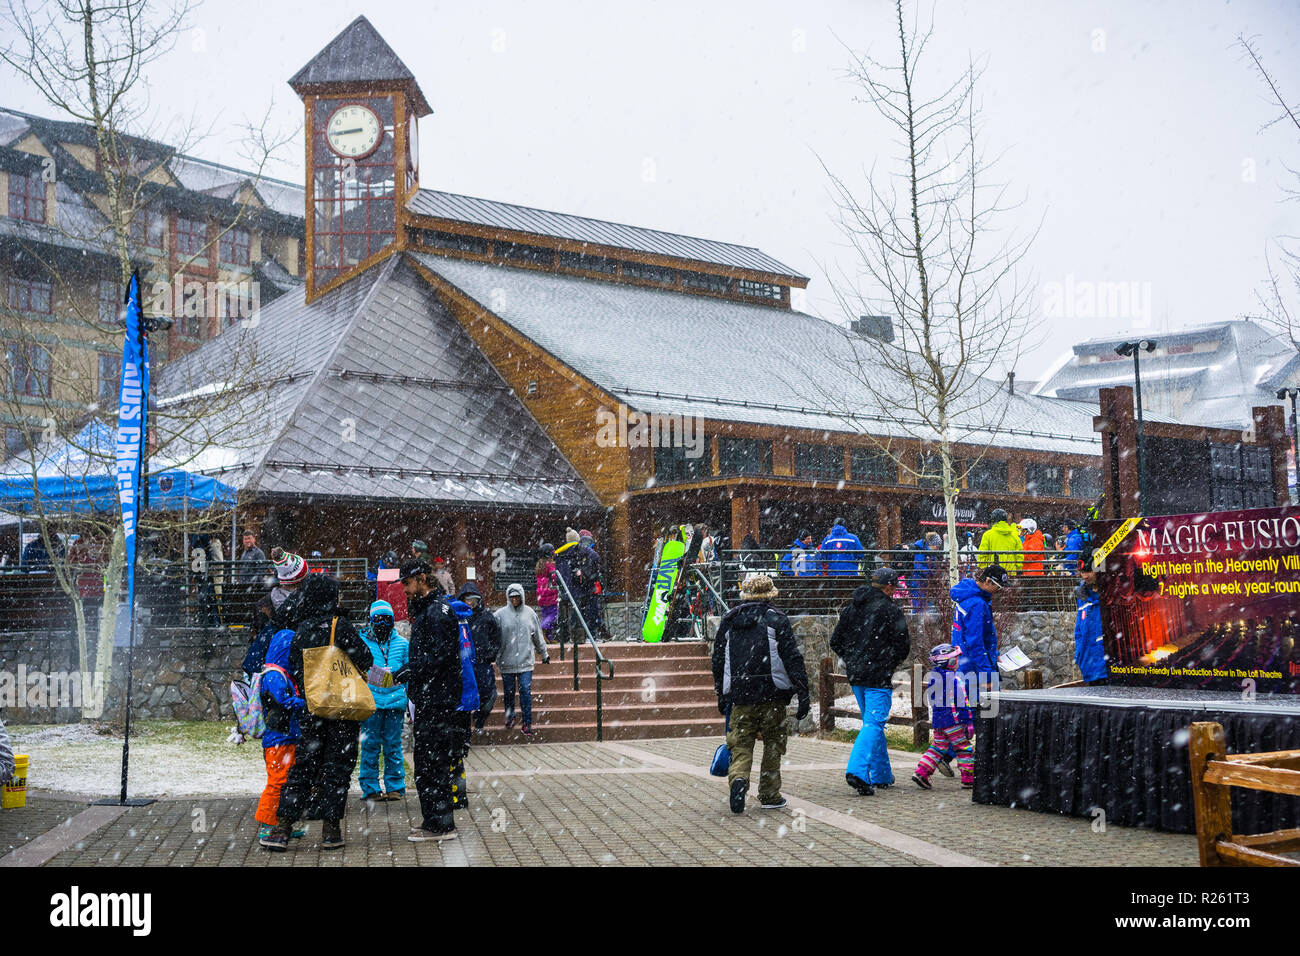 March 24, 2018 South Lake Tahoe / CA / USA - People gatheres around the Heavenly Ski Gondola starting point on a morning with heavy snowing Stock Photo